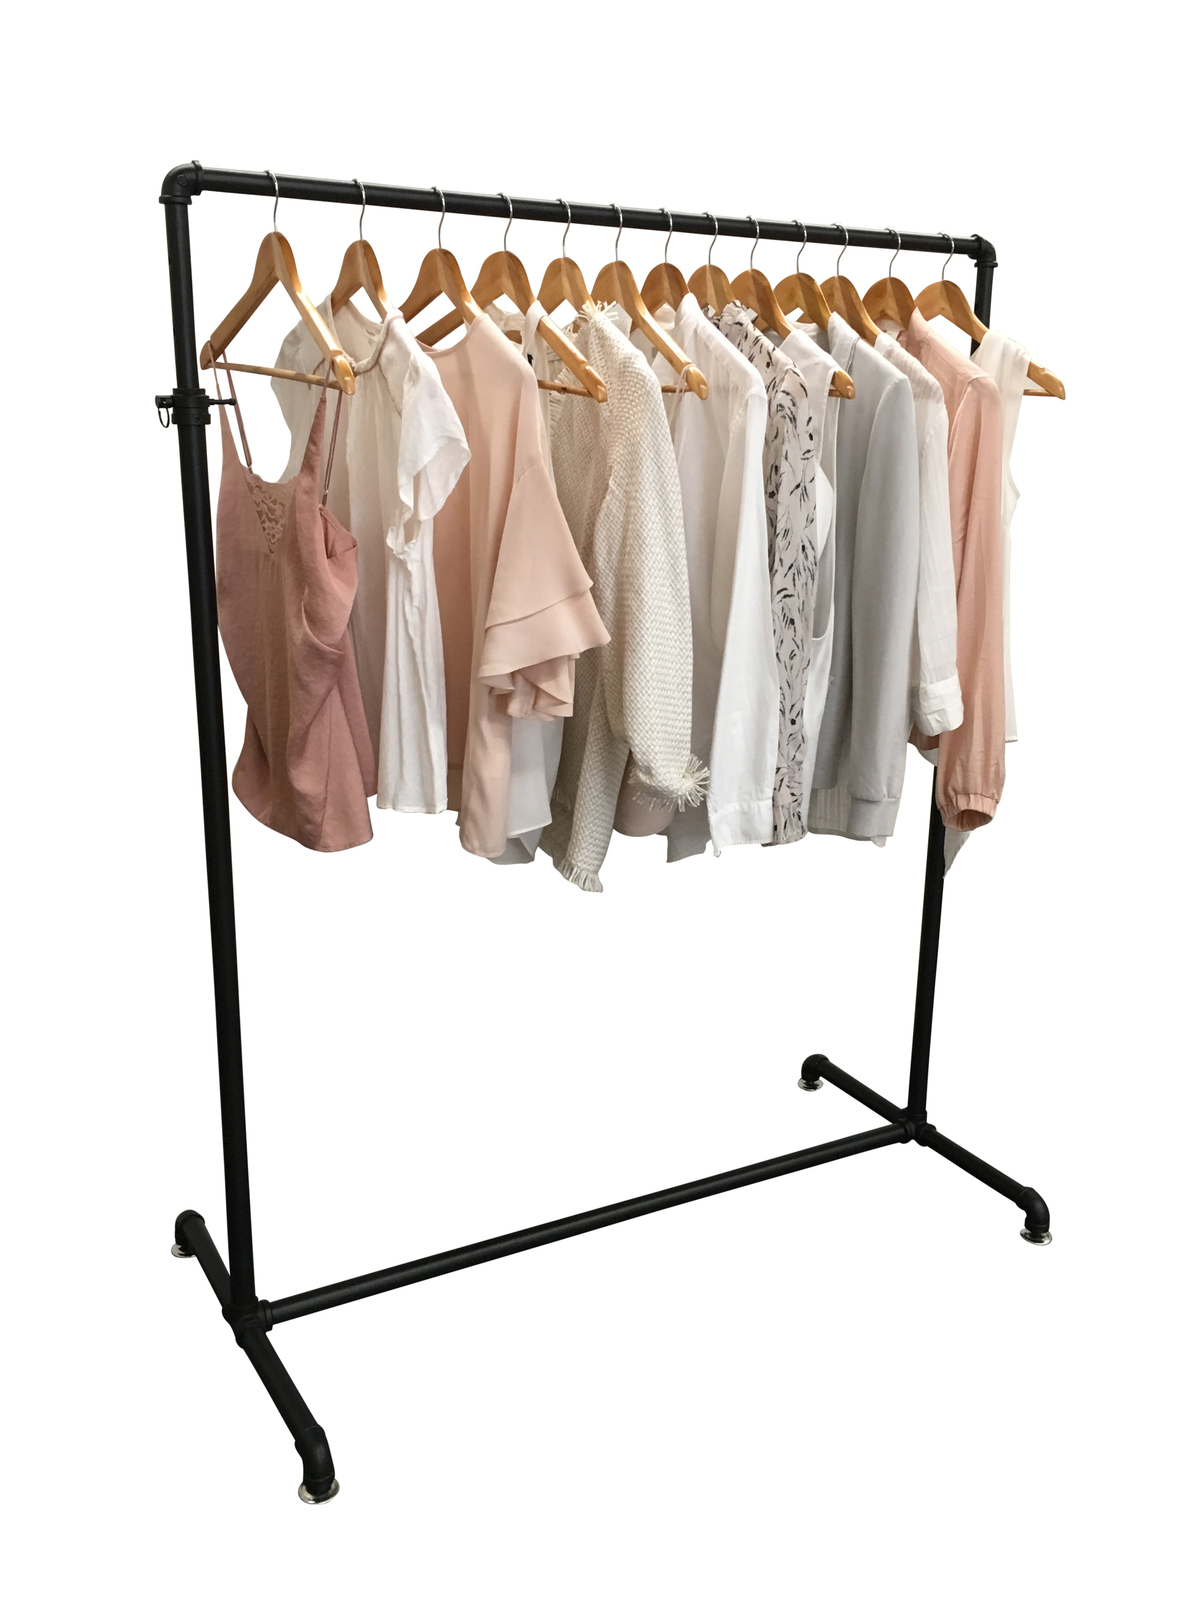 Industrial Pipe Clothes Rack Garment Display Rax And